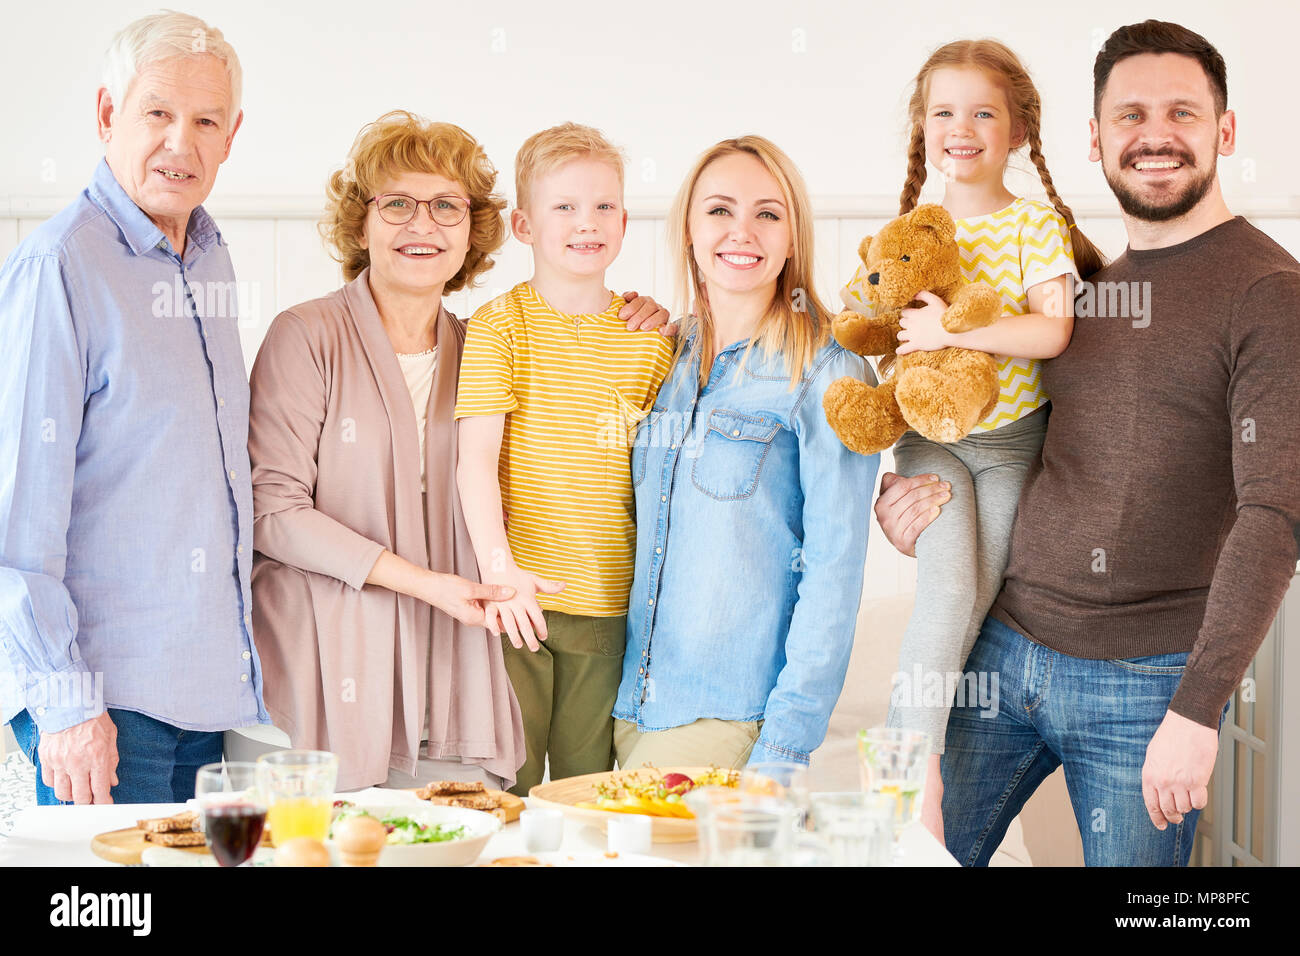 Two Generation Family Posing at Home - Stock Image